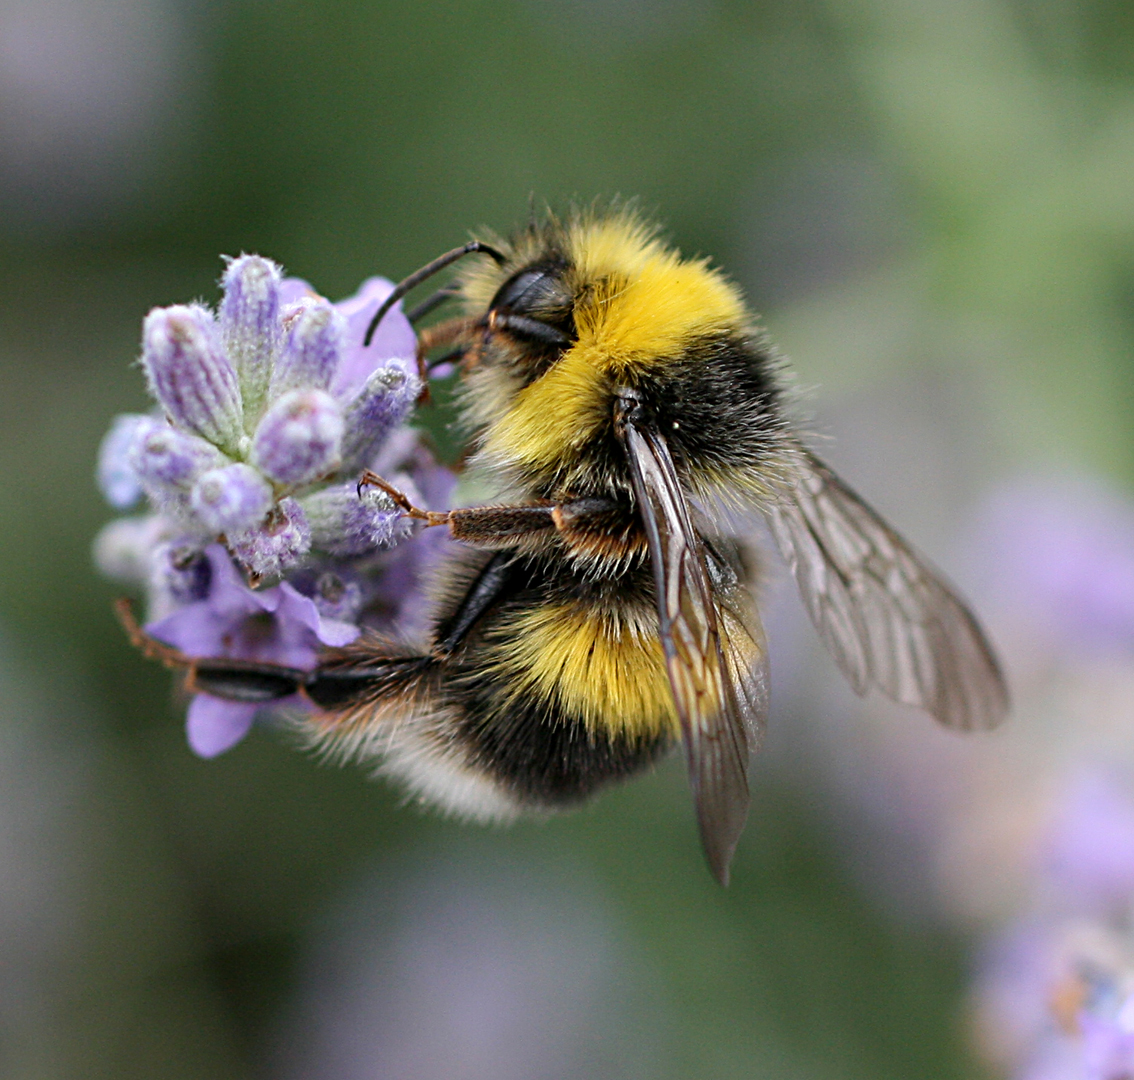 9 for 90: White-tailed Bumblebee